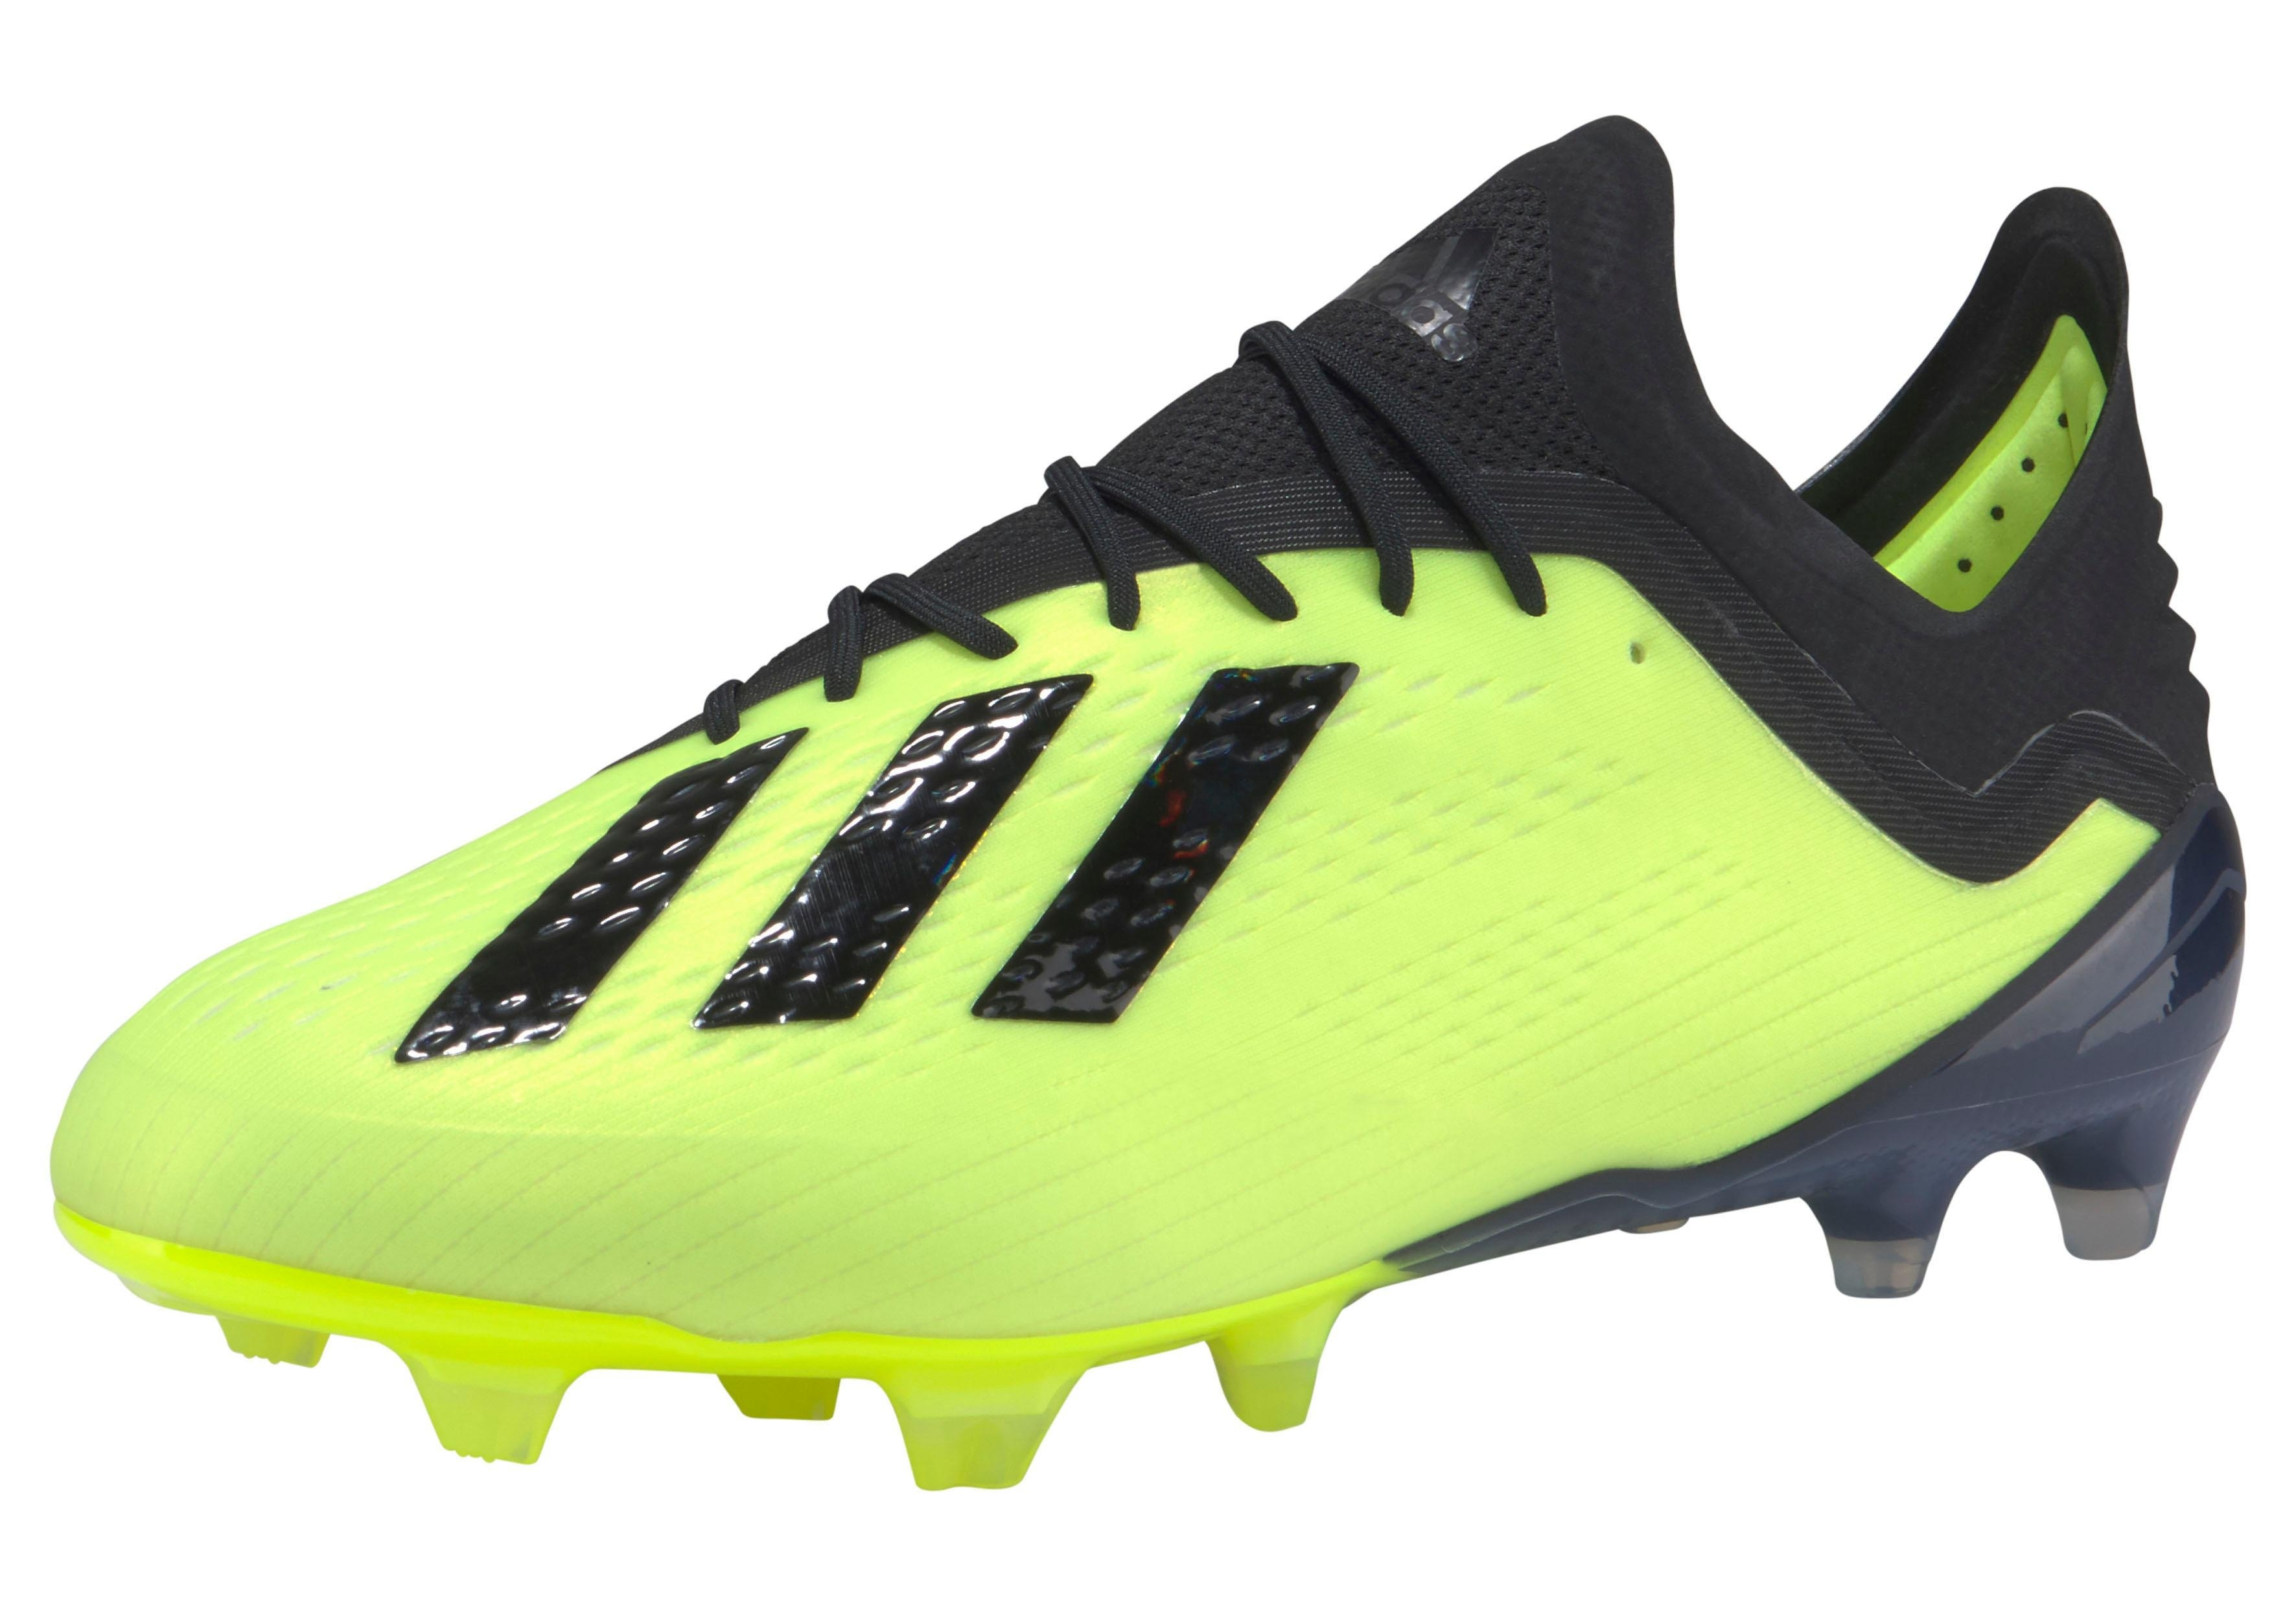 Online Shoppen Adidas 18 1 Fg Voetbalschoenenx Performance eEWH9bDY2I